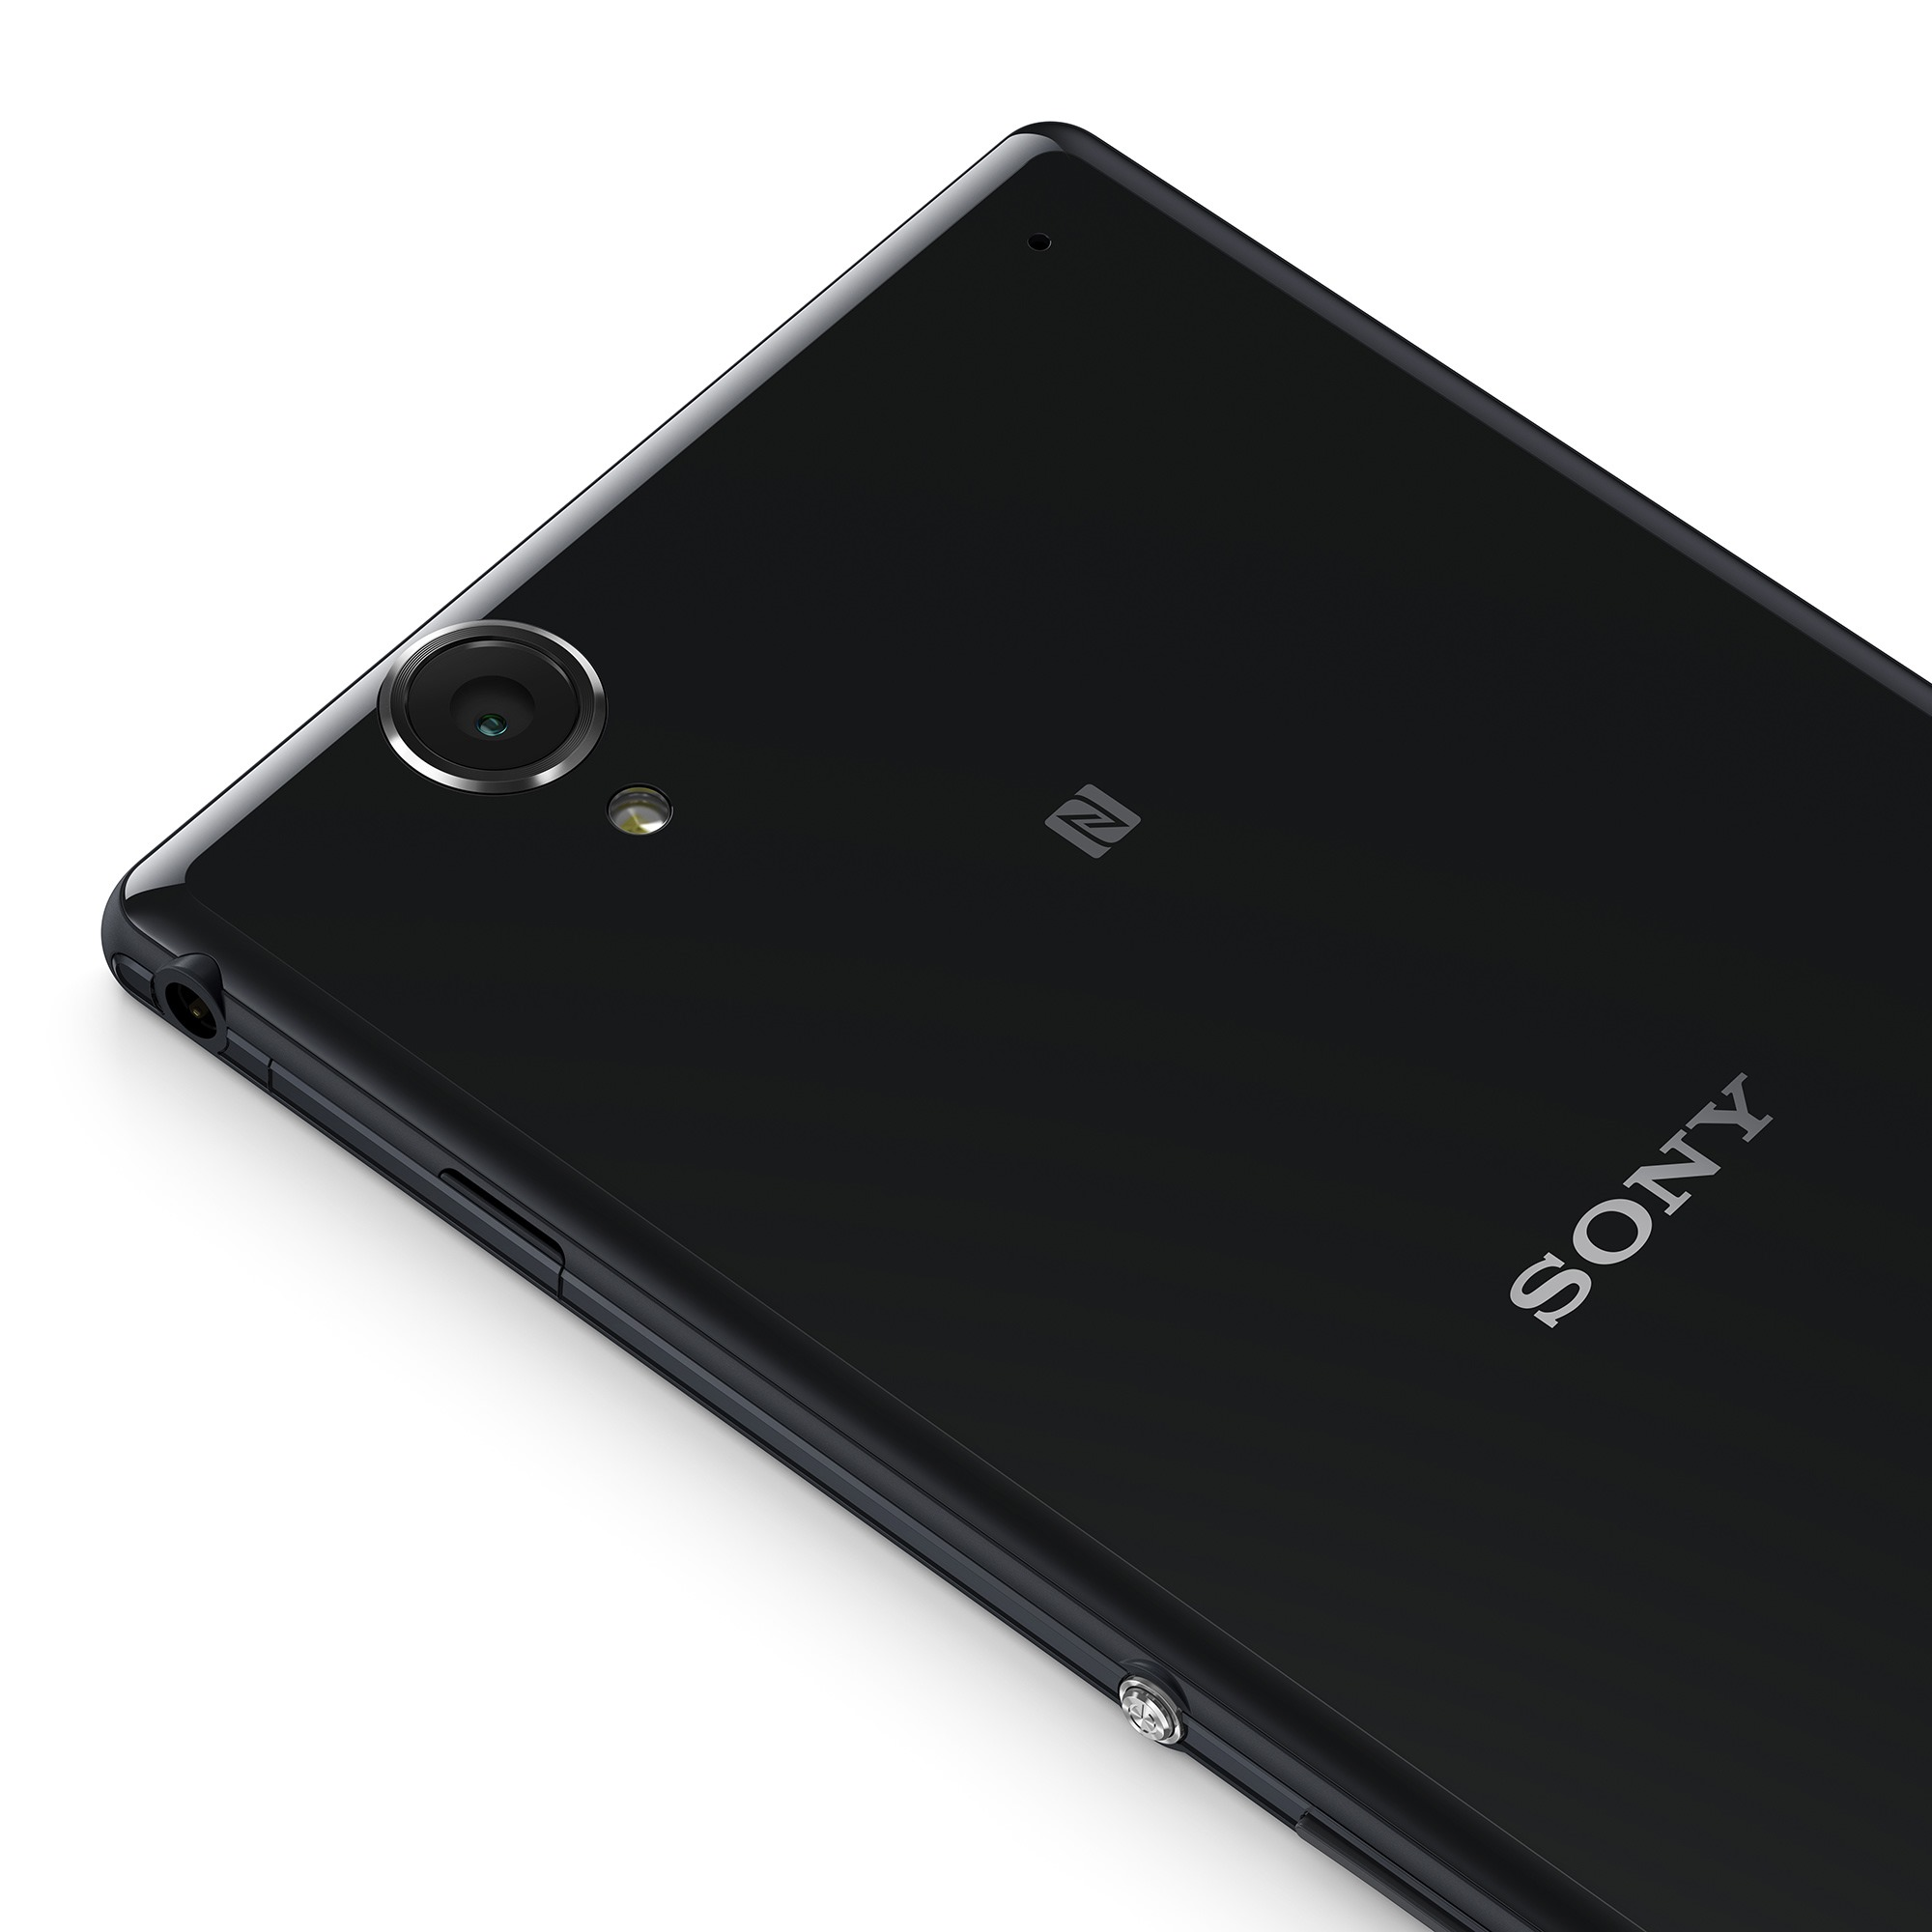 The Xperia T2 Ultra is...